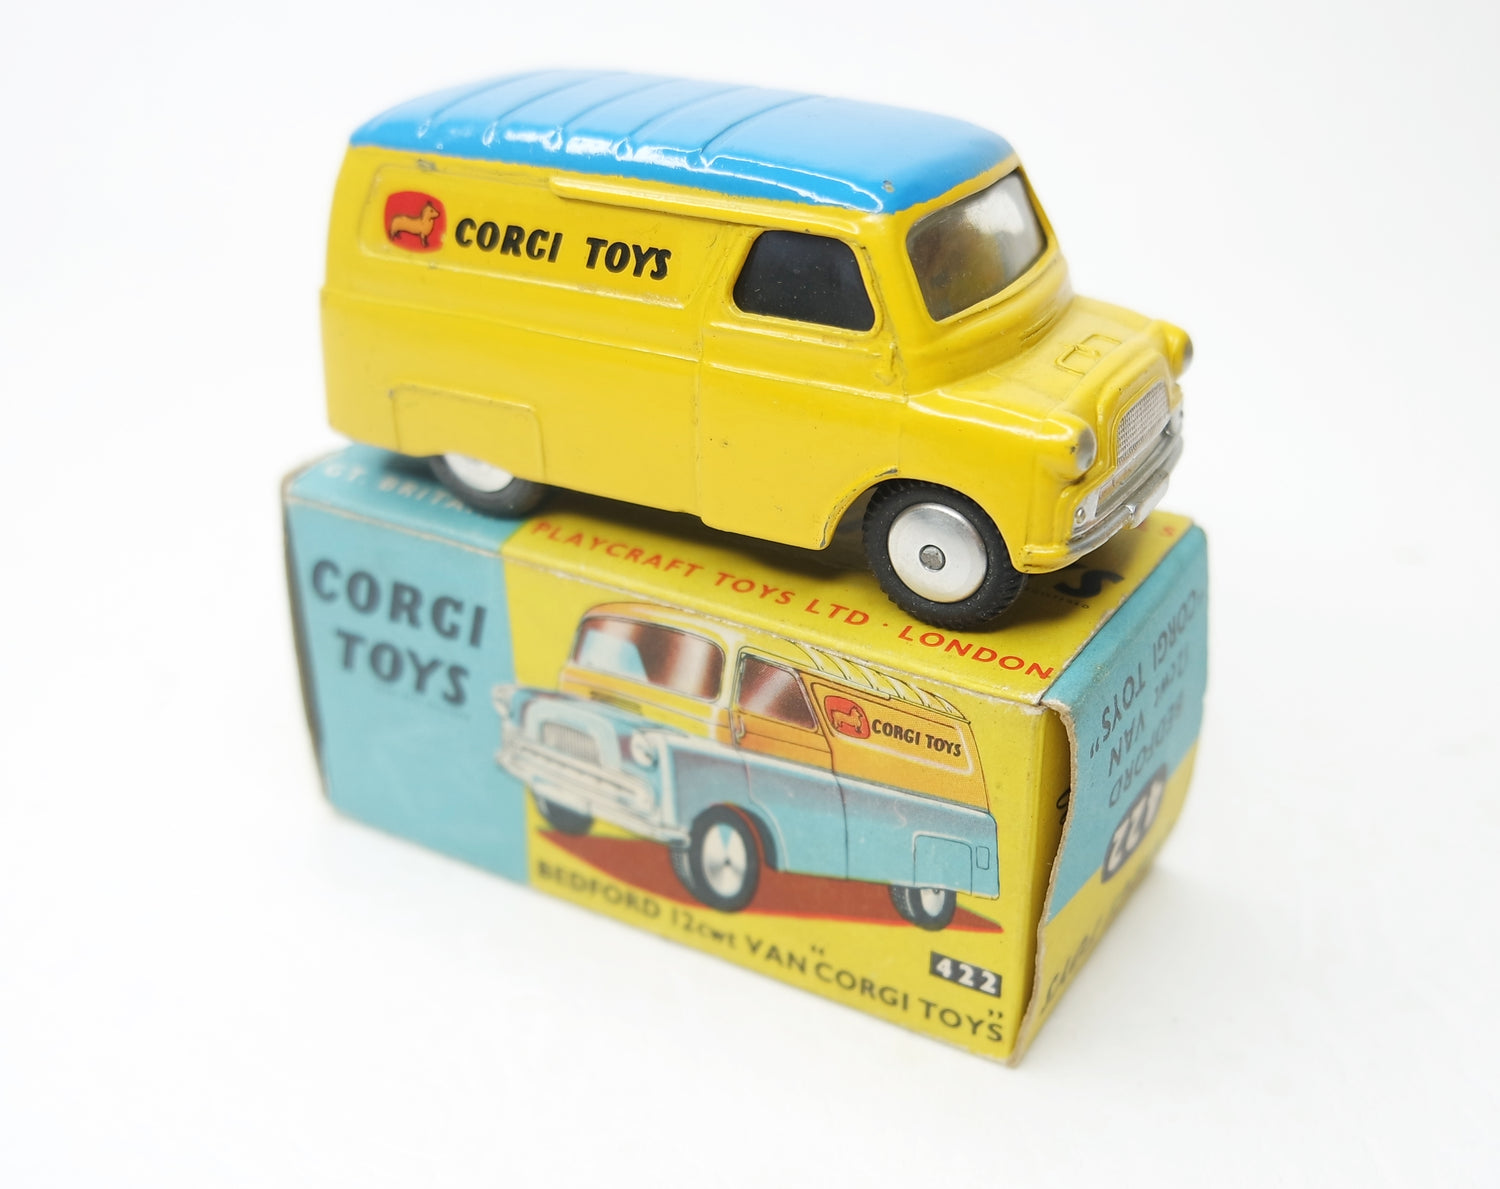 Corgi Toys 422 Bedford Van 'Corgi Toys' Very Near Mint/Boxed